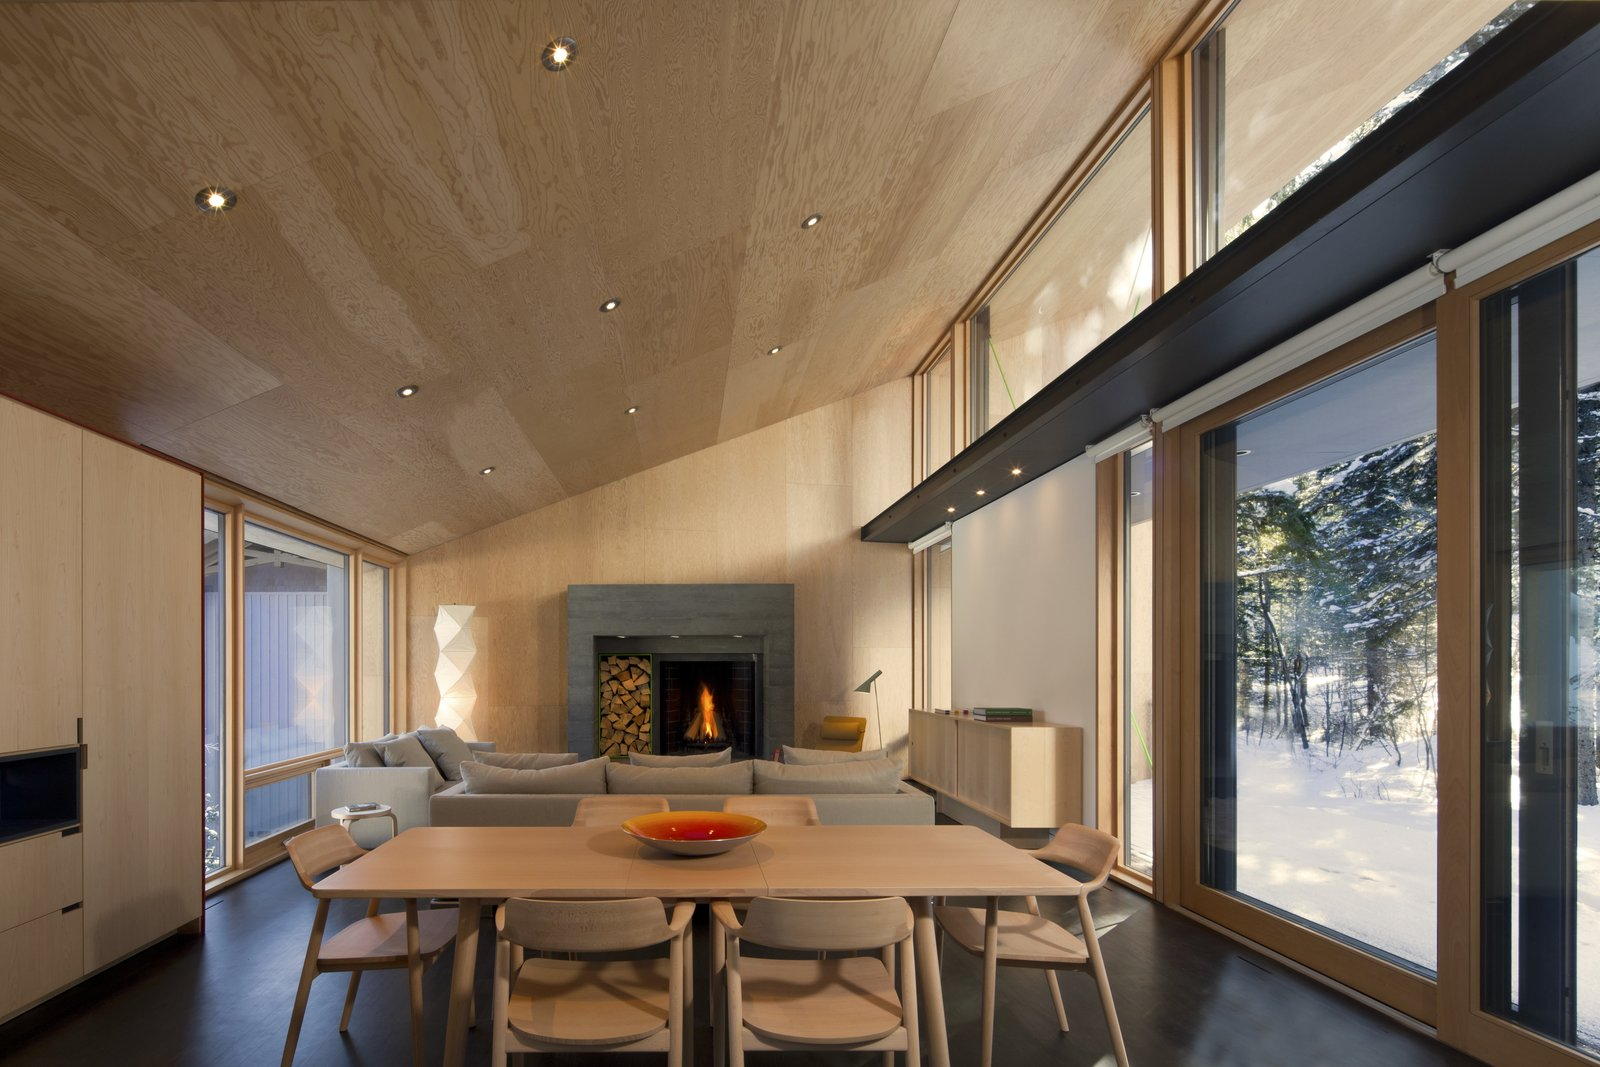 Wood Burning Fireplace, Table, Chair, Living Room, and Recessed Lighting  Kicking Horse Residence by Bohlin Cywinski Jackson